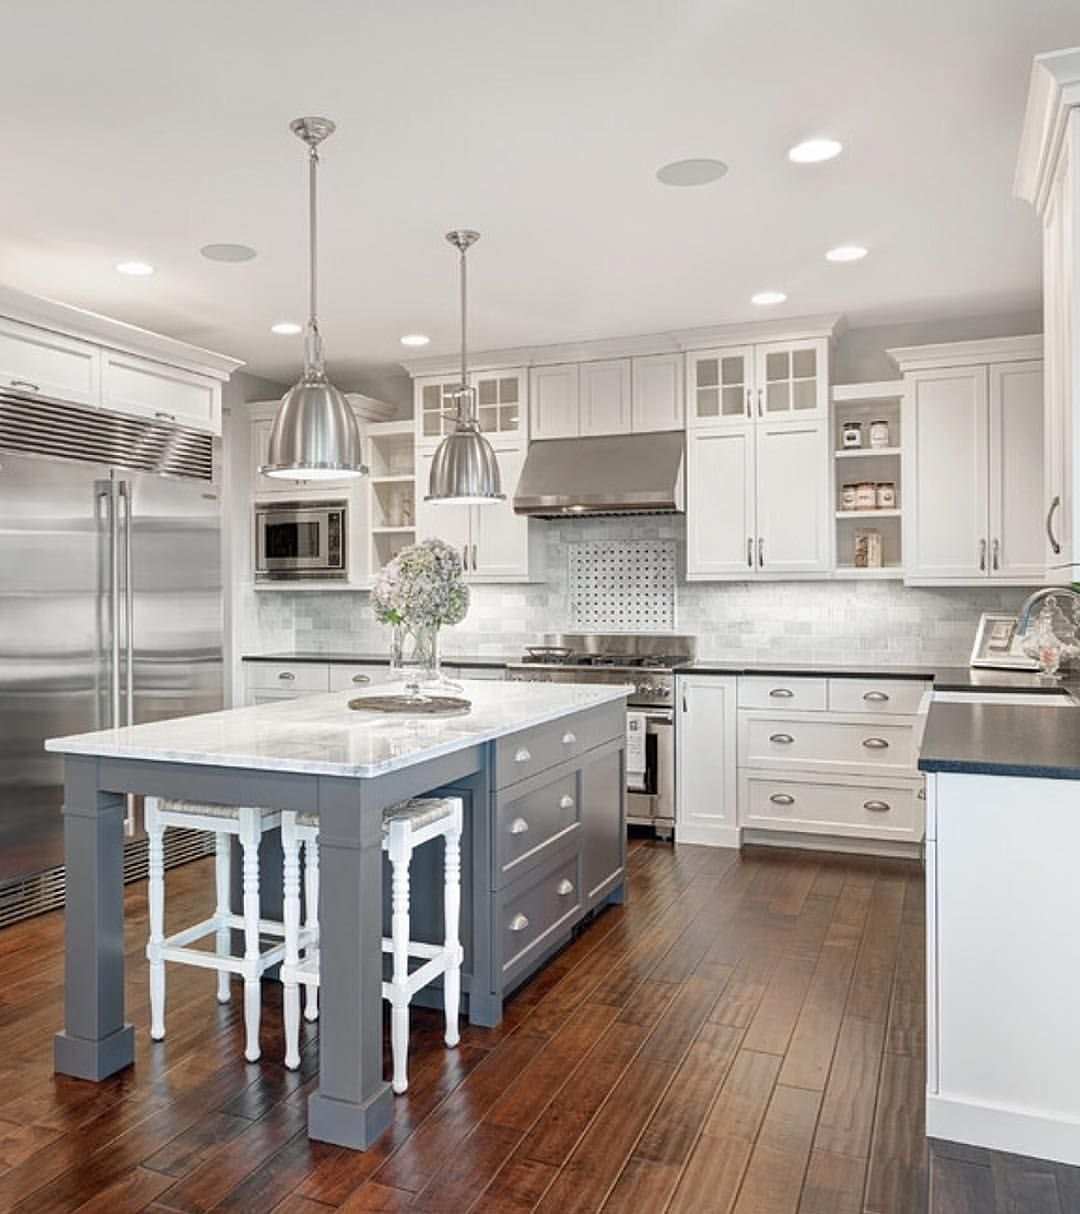 White Cabinets Gray Subway Tile Kashmir White Granite: White & Marble Kitchen With Grey Island